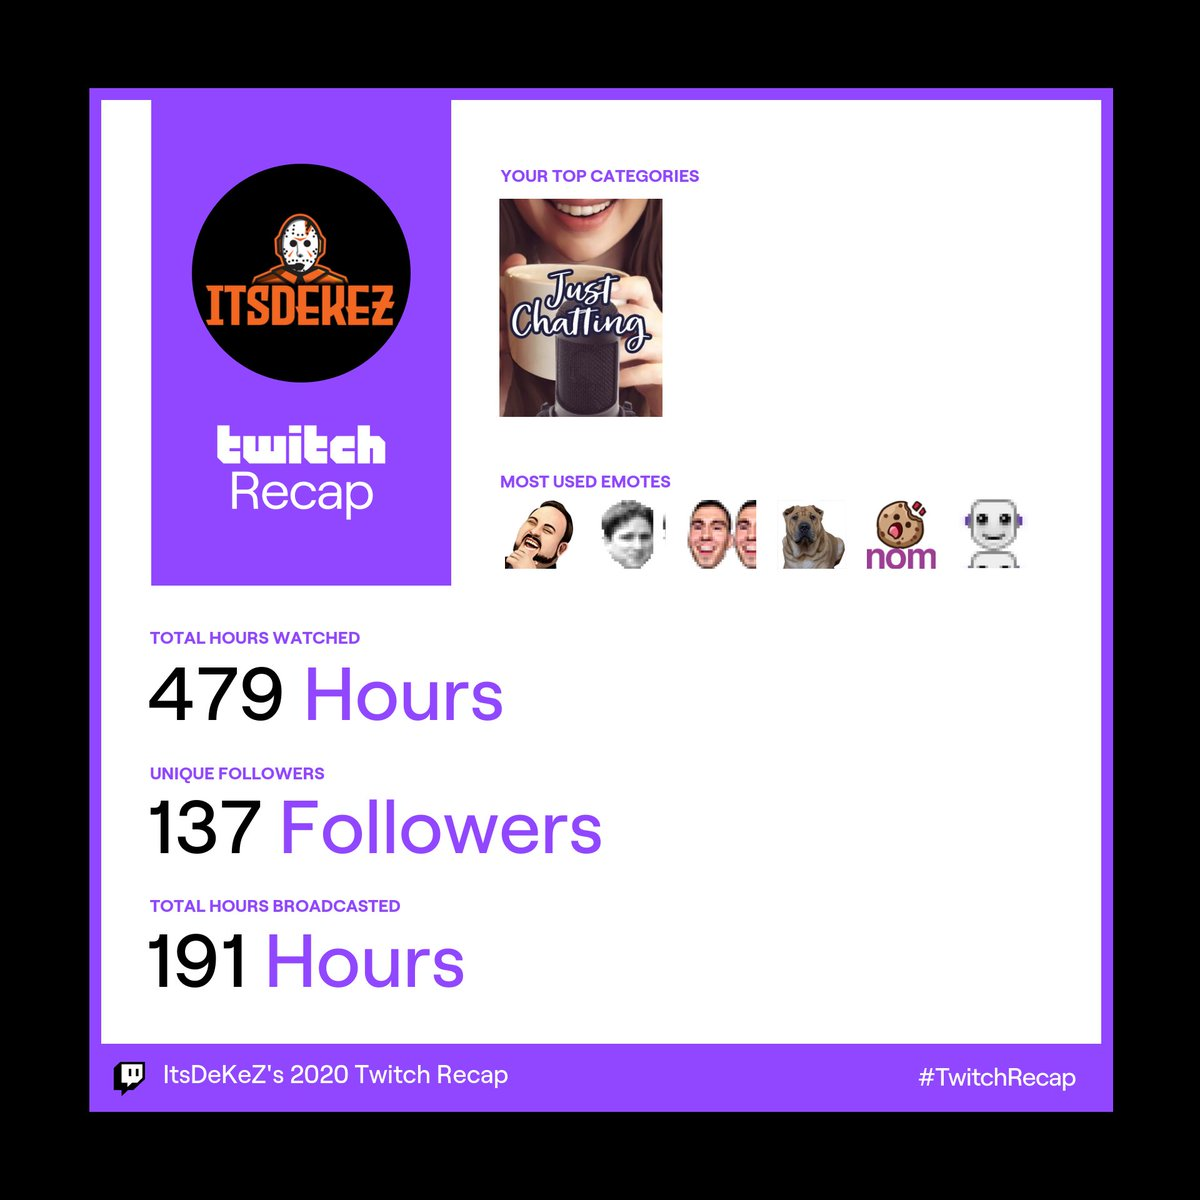 Appreciate all of you who supported me in 2020😁 the grind continues🔥 #twitch #twitchrecap #gaming #gamers #SmallStreamersConnect